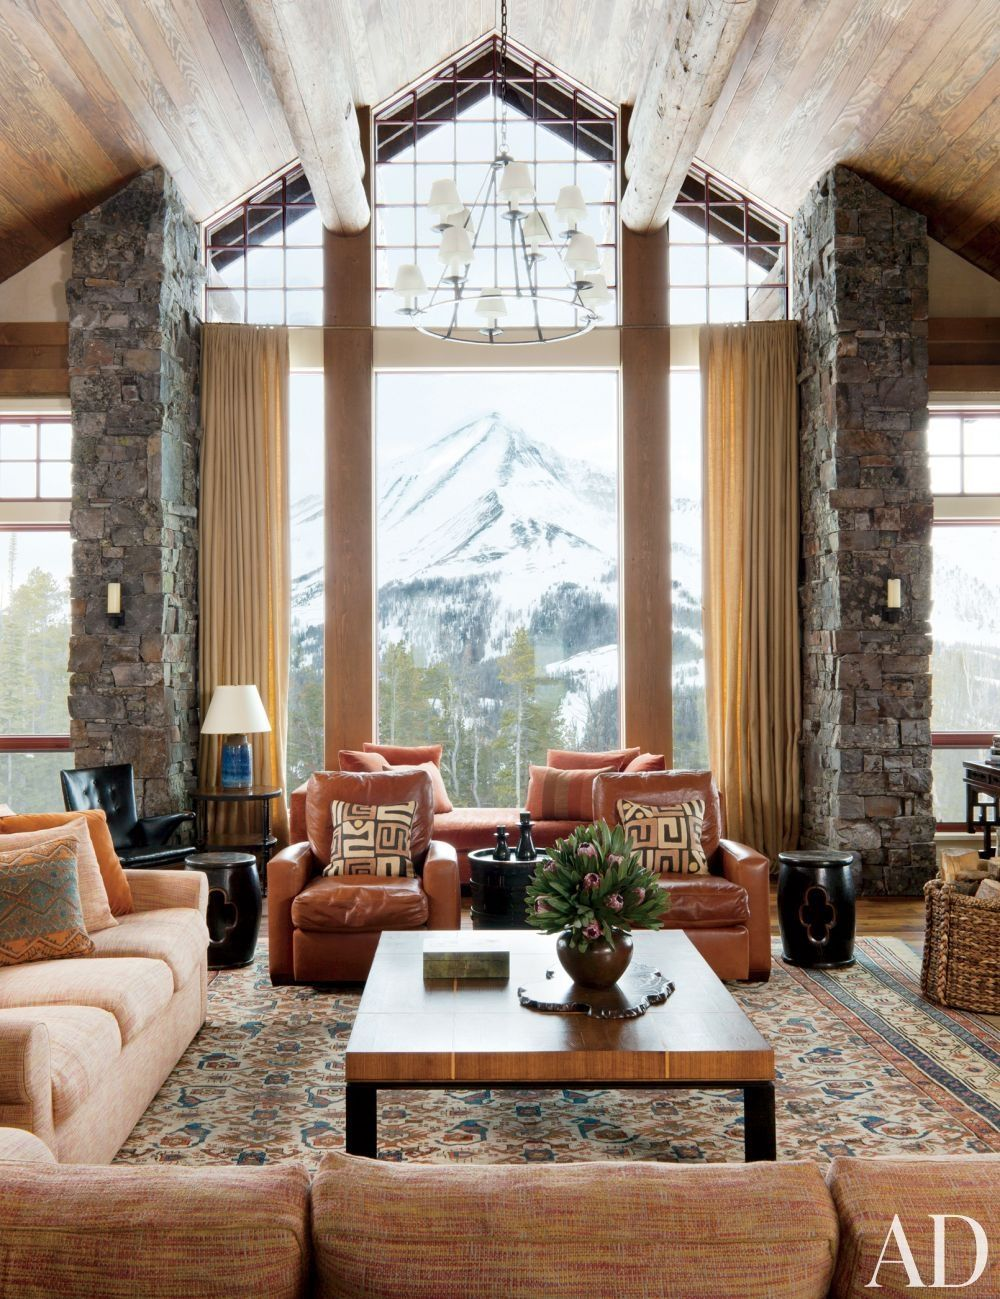 Ski Lodge Decor Better Rustic Luxury Living Room Persian Carpet Leather Sofas Stone Wall